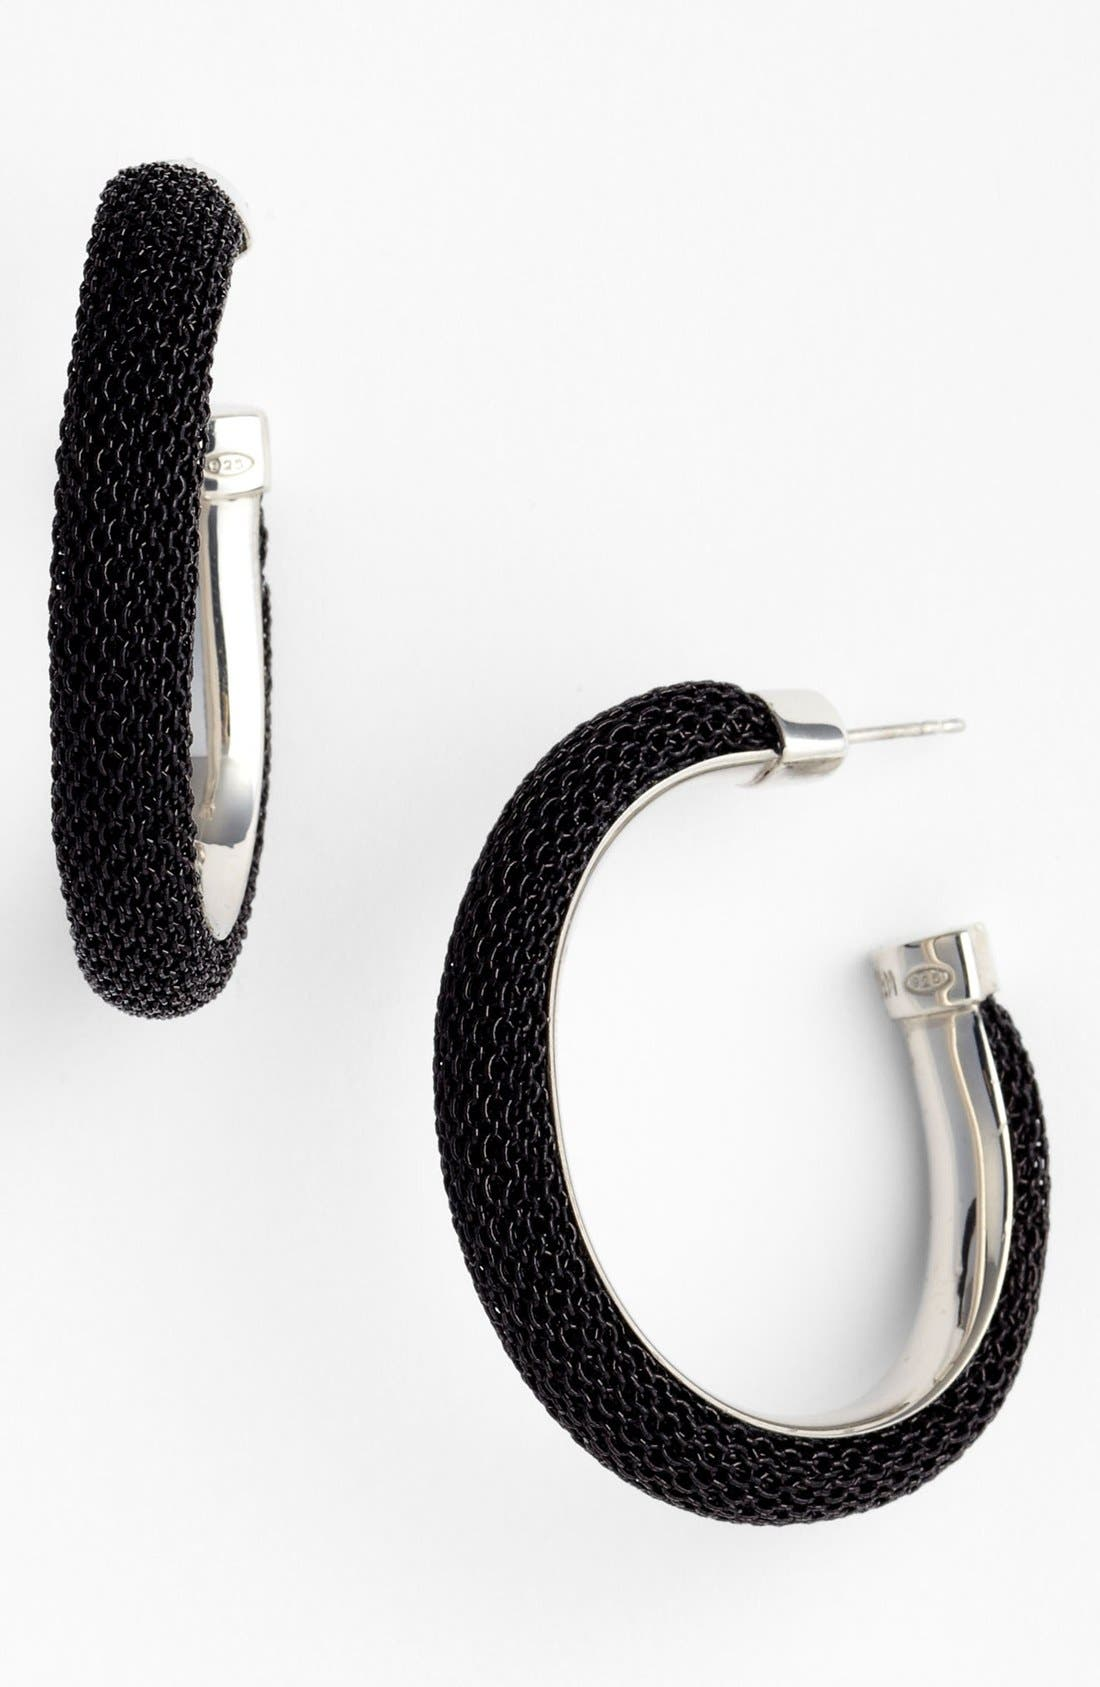 Main Image - Adami & Martucci 'Mesh' Oval Hoop Earrings (Nordstrom Exclusive)